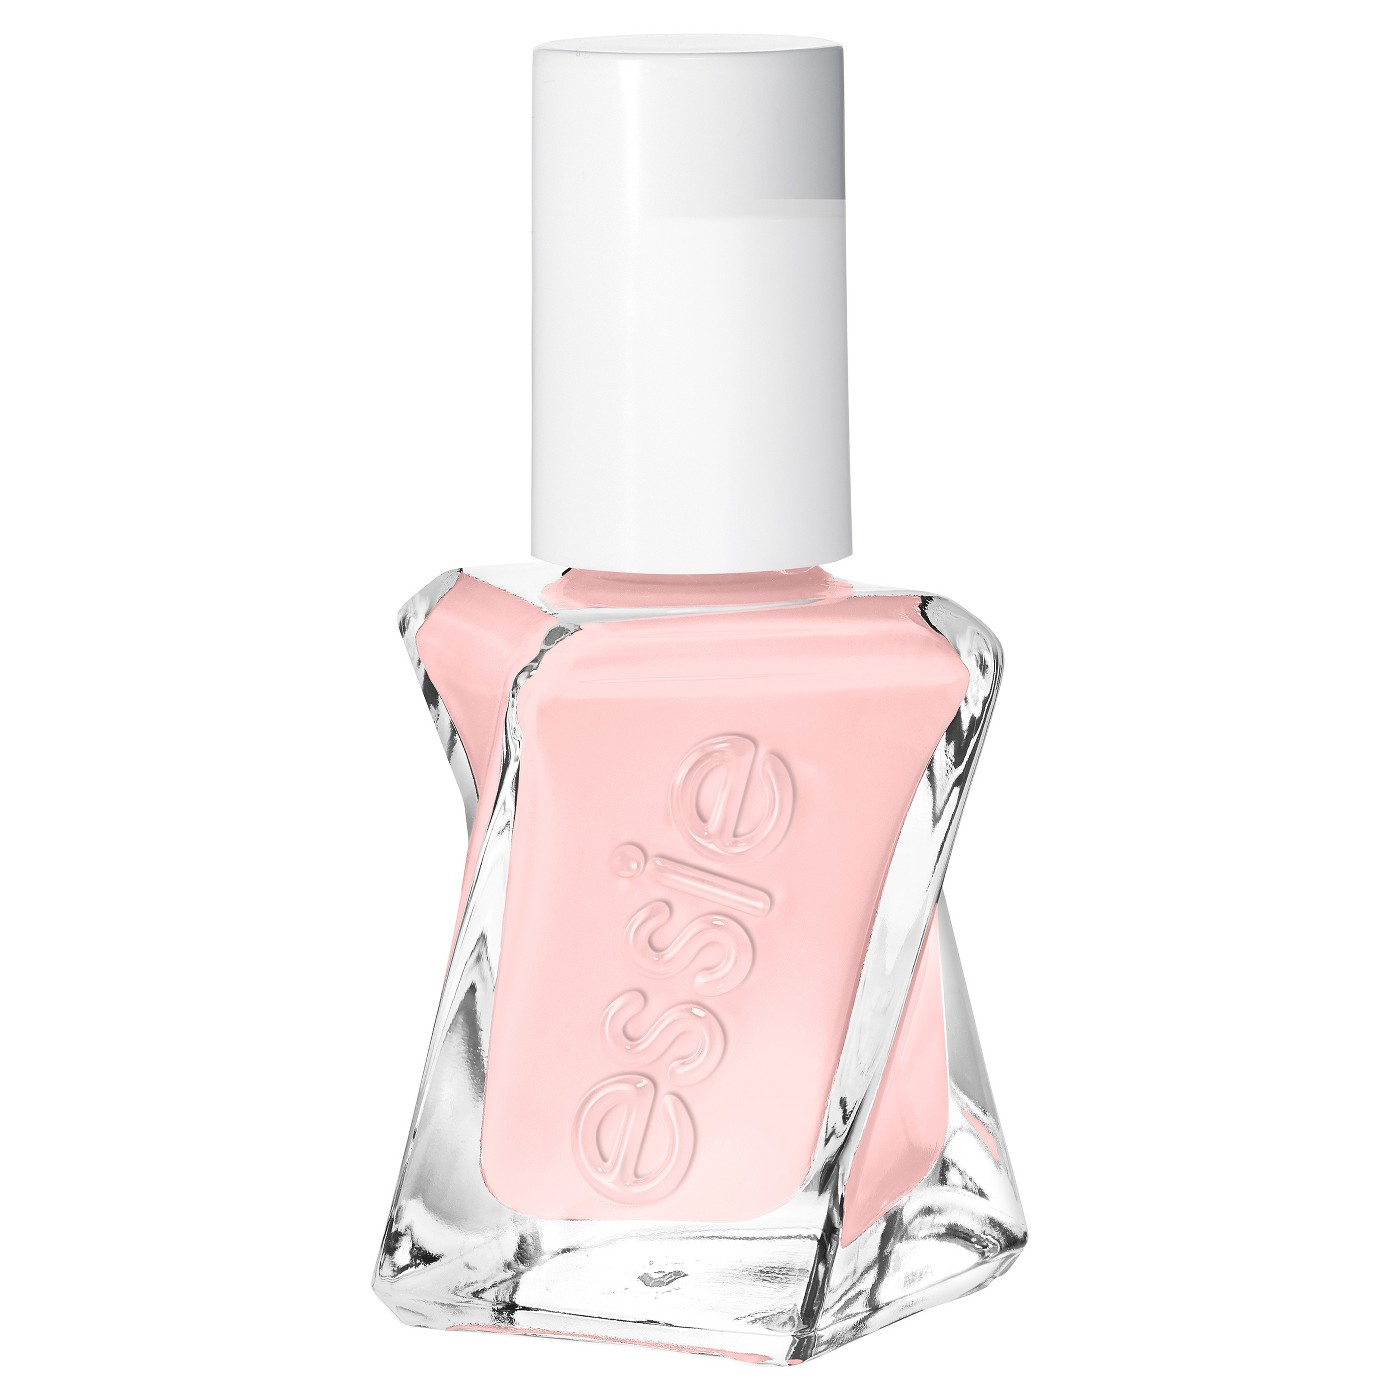 essie Gel Couture Nail Polish - image 1 of 3